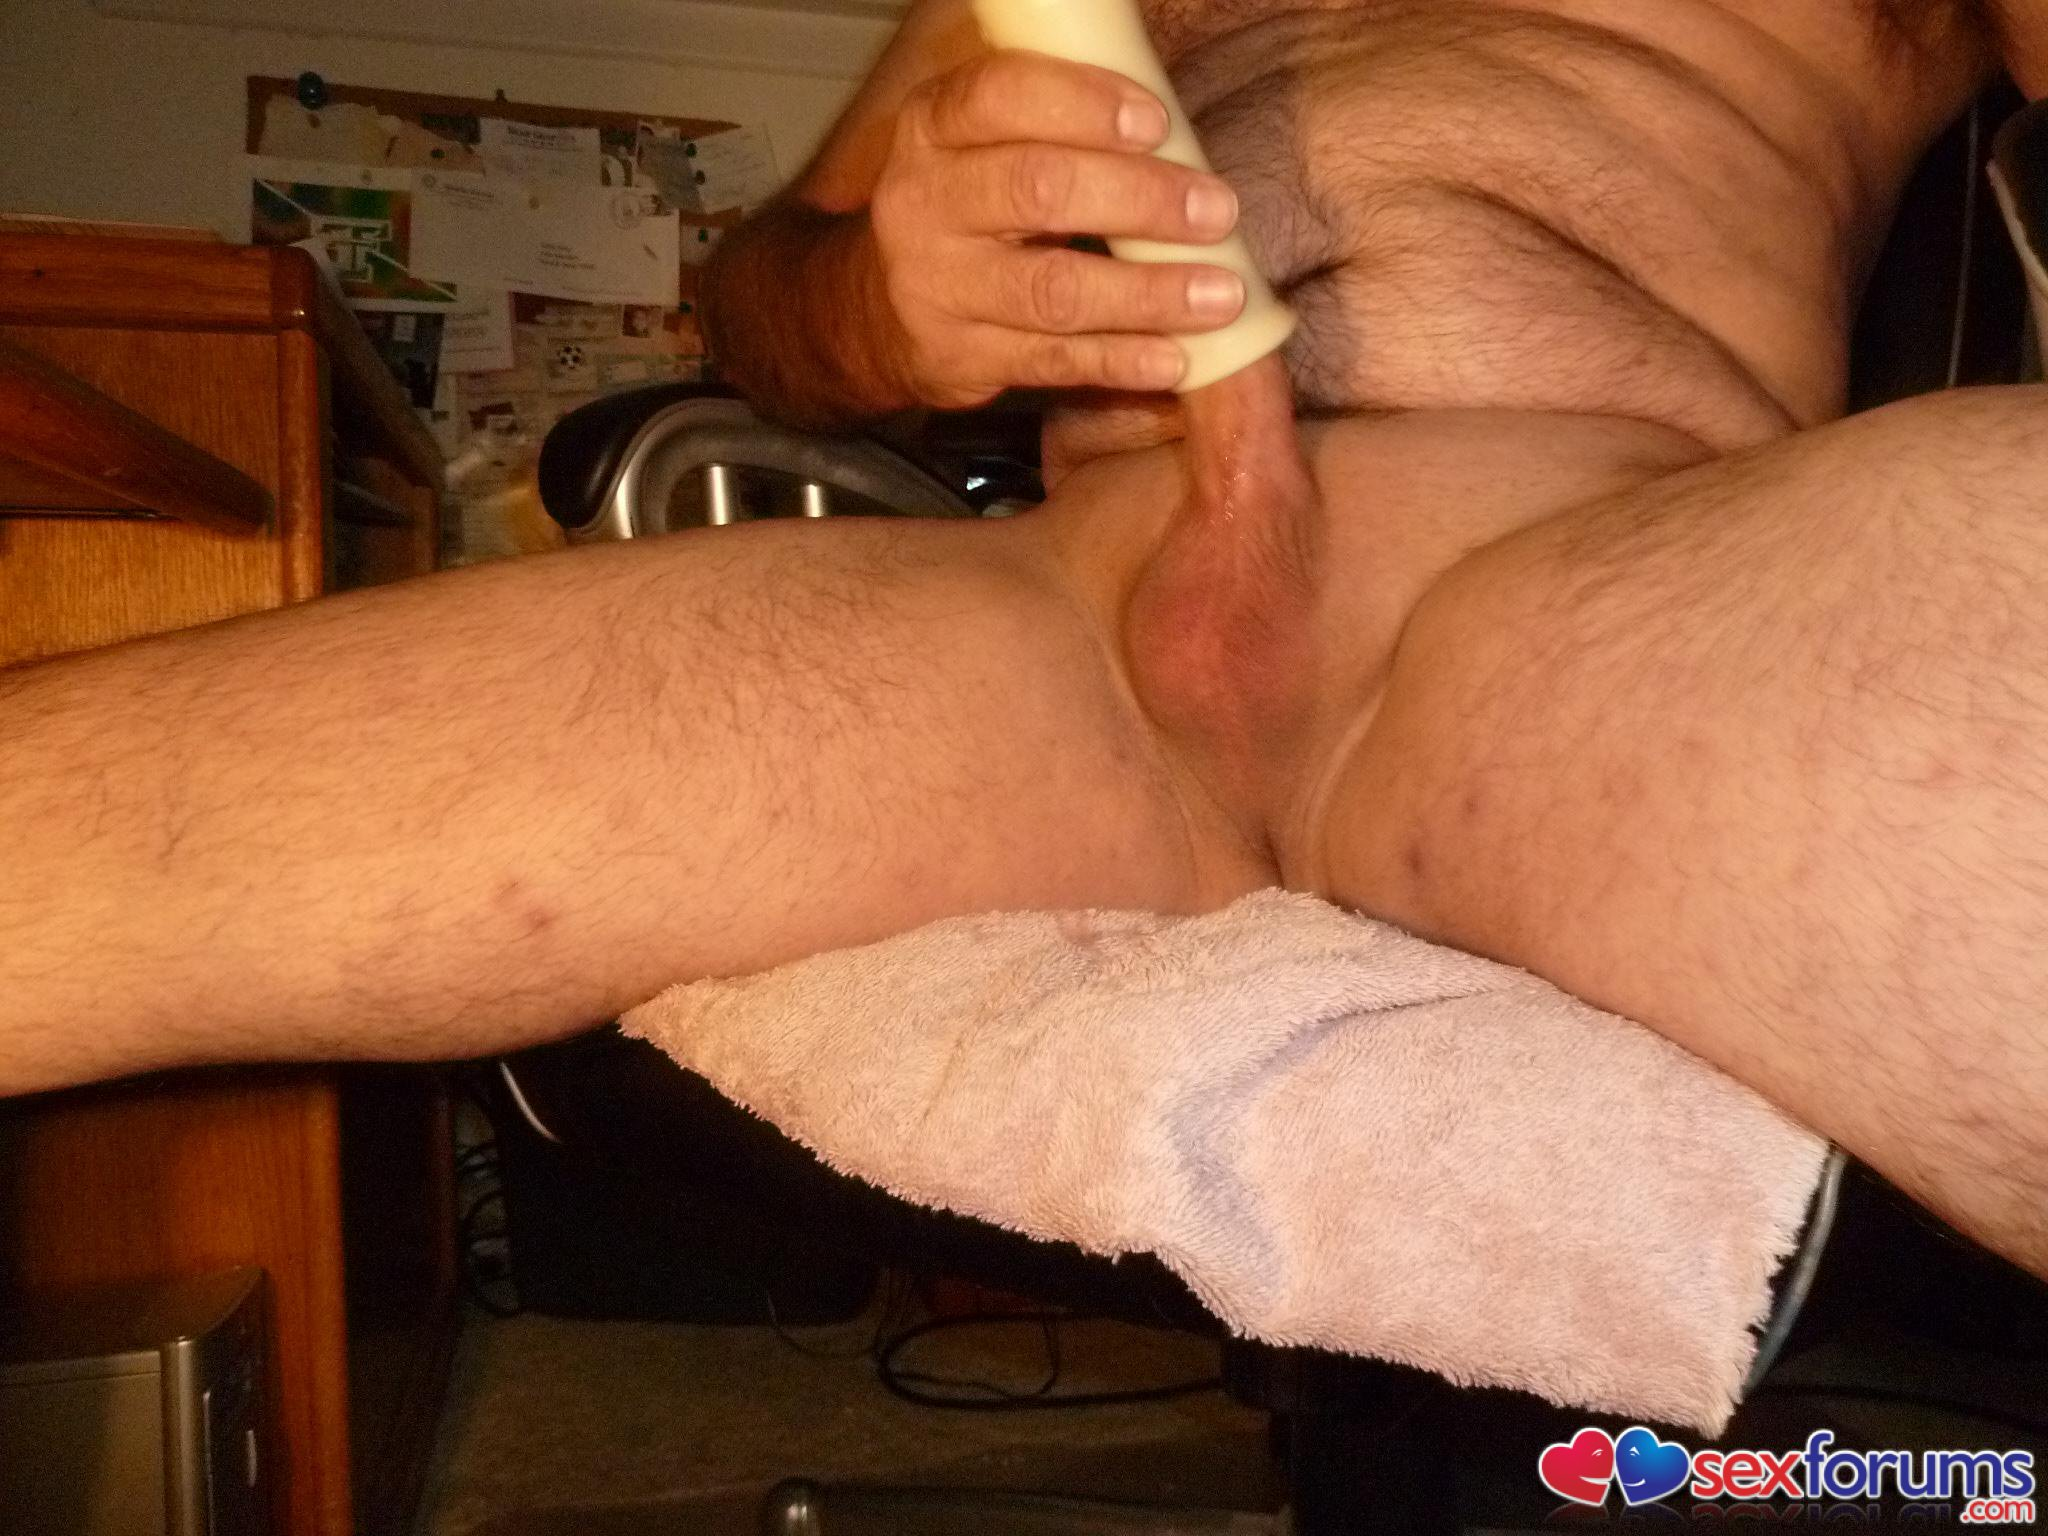 his first time sucking cock